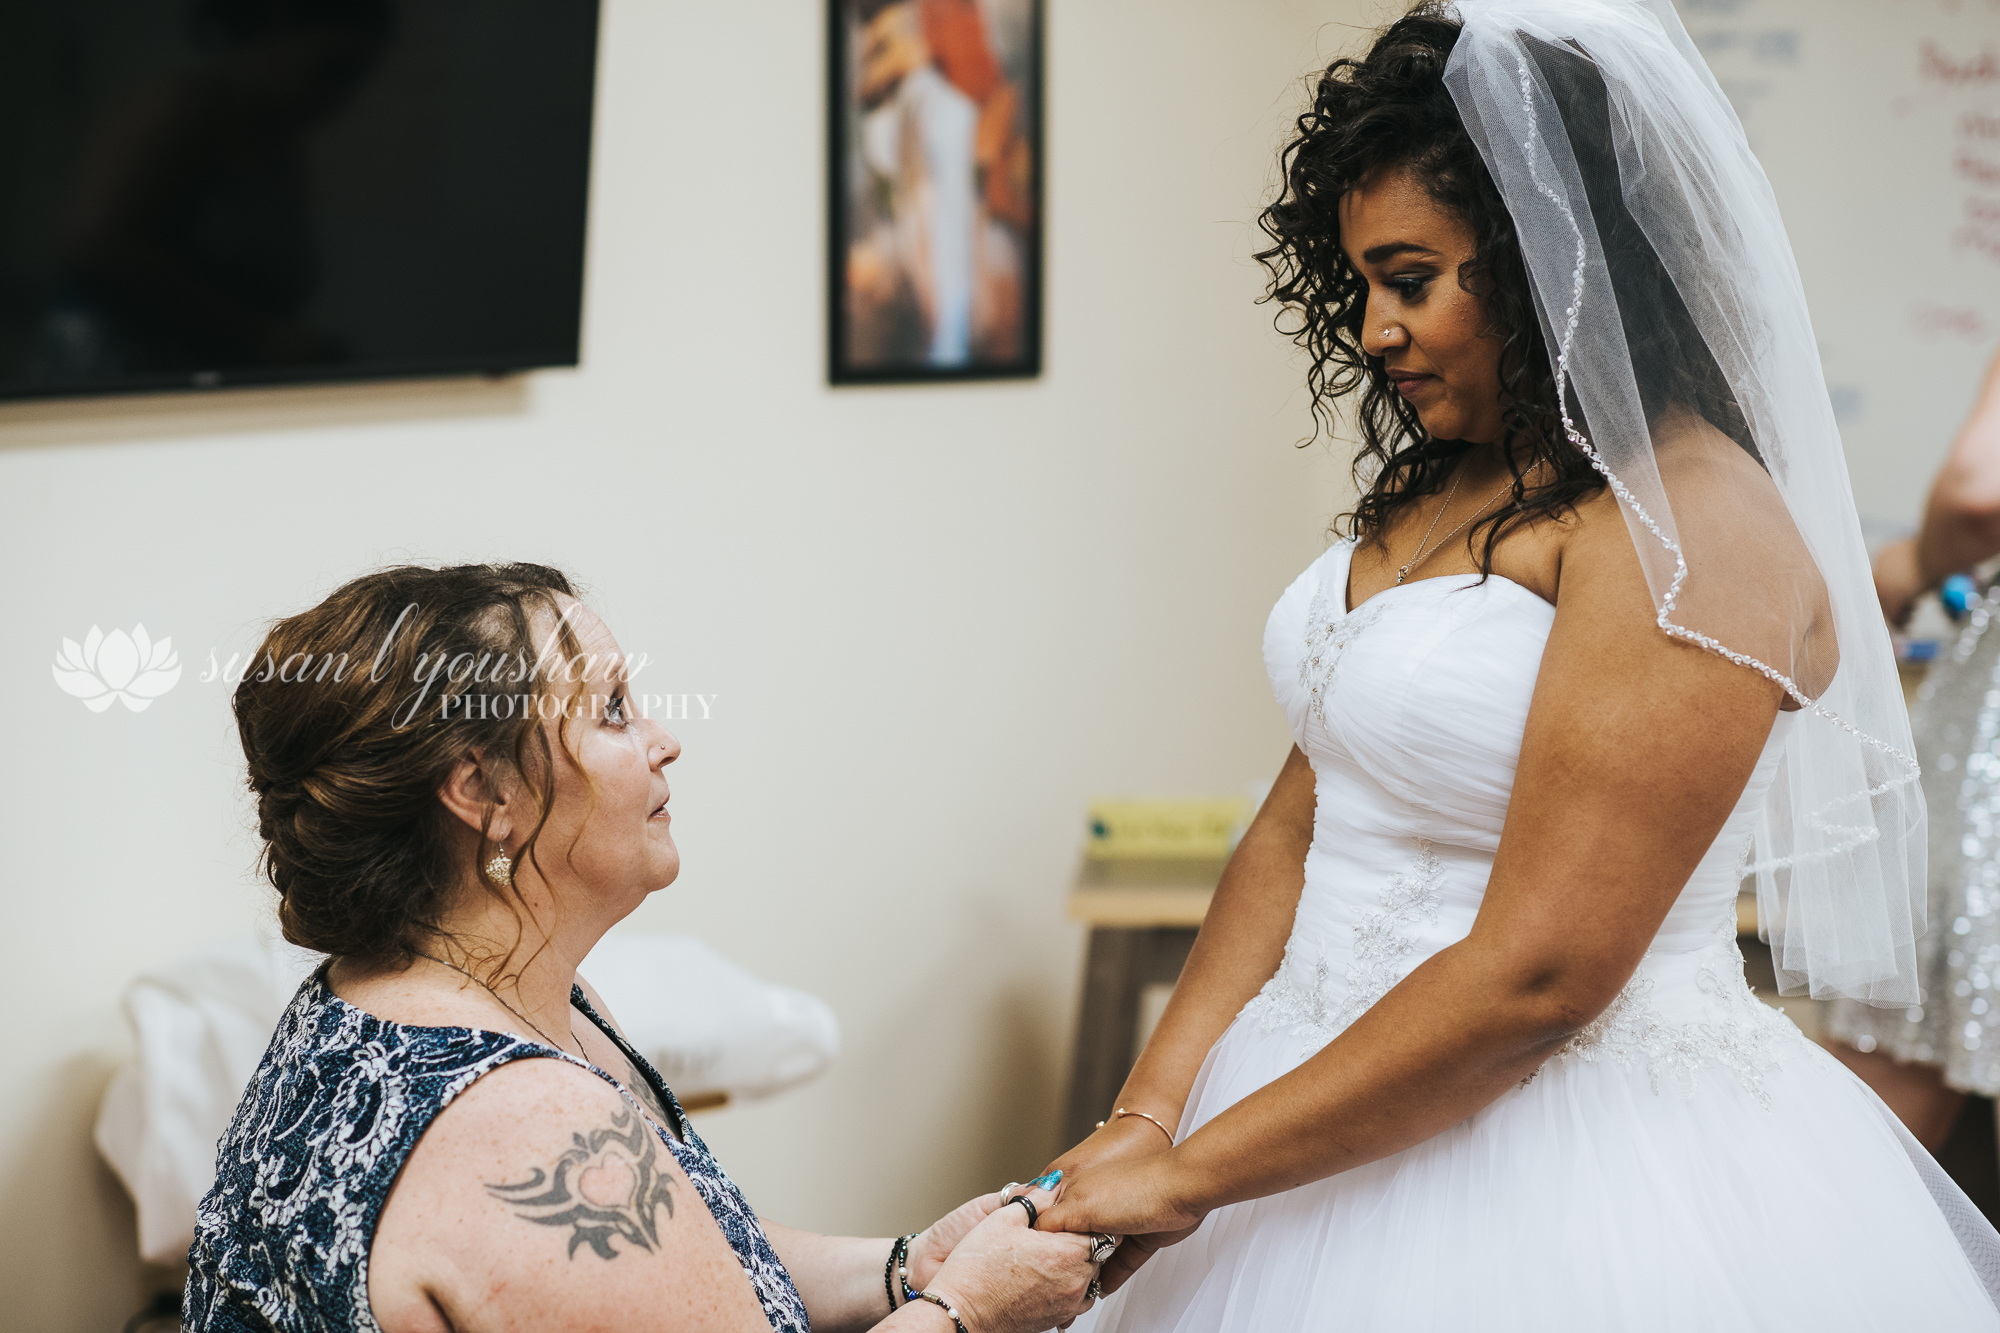 Katelyn and Wes Wedding Photos 07-13-2019 SLY Photography-12.jpg